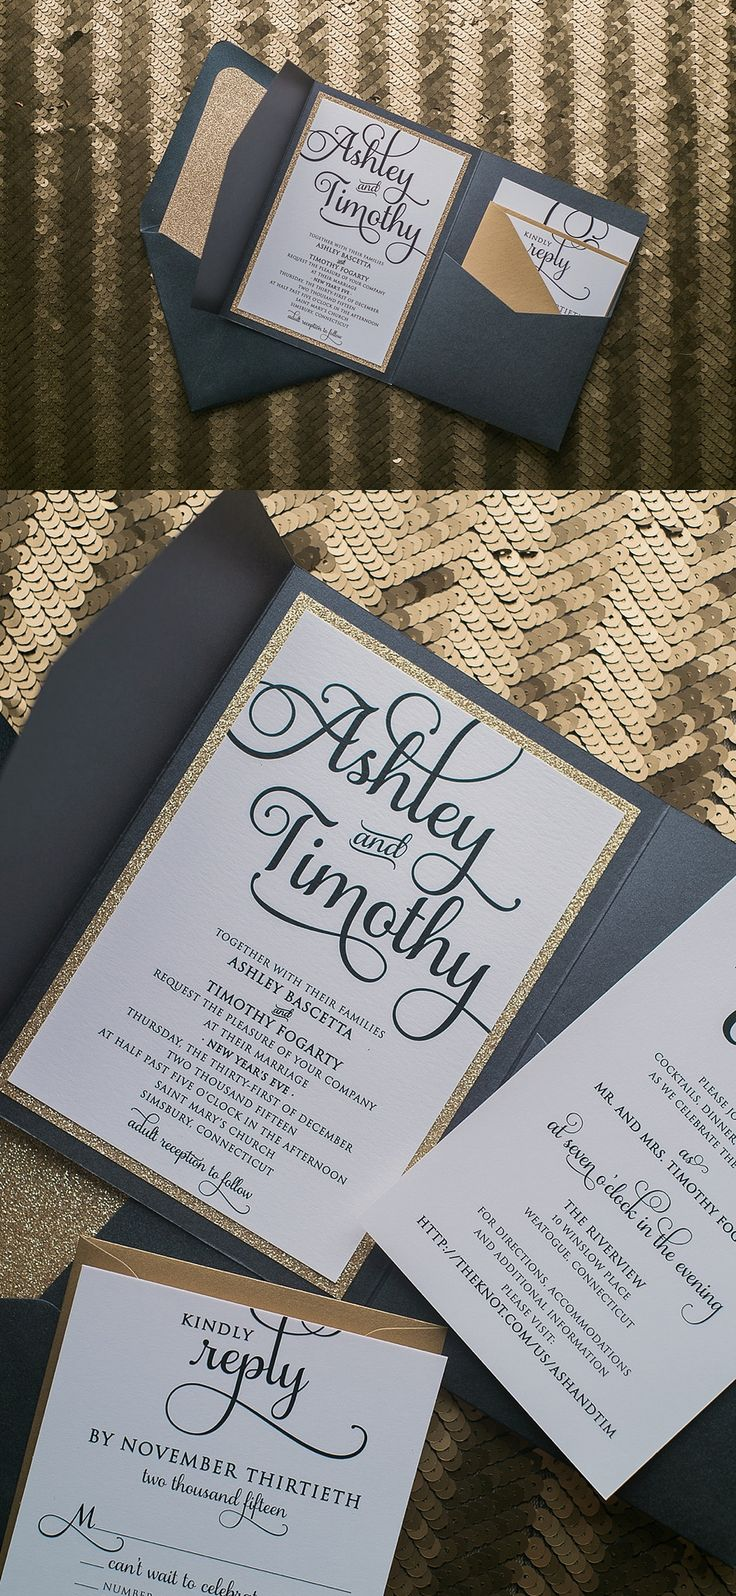 Over 100 gorgeous wedding invitations styled to